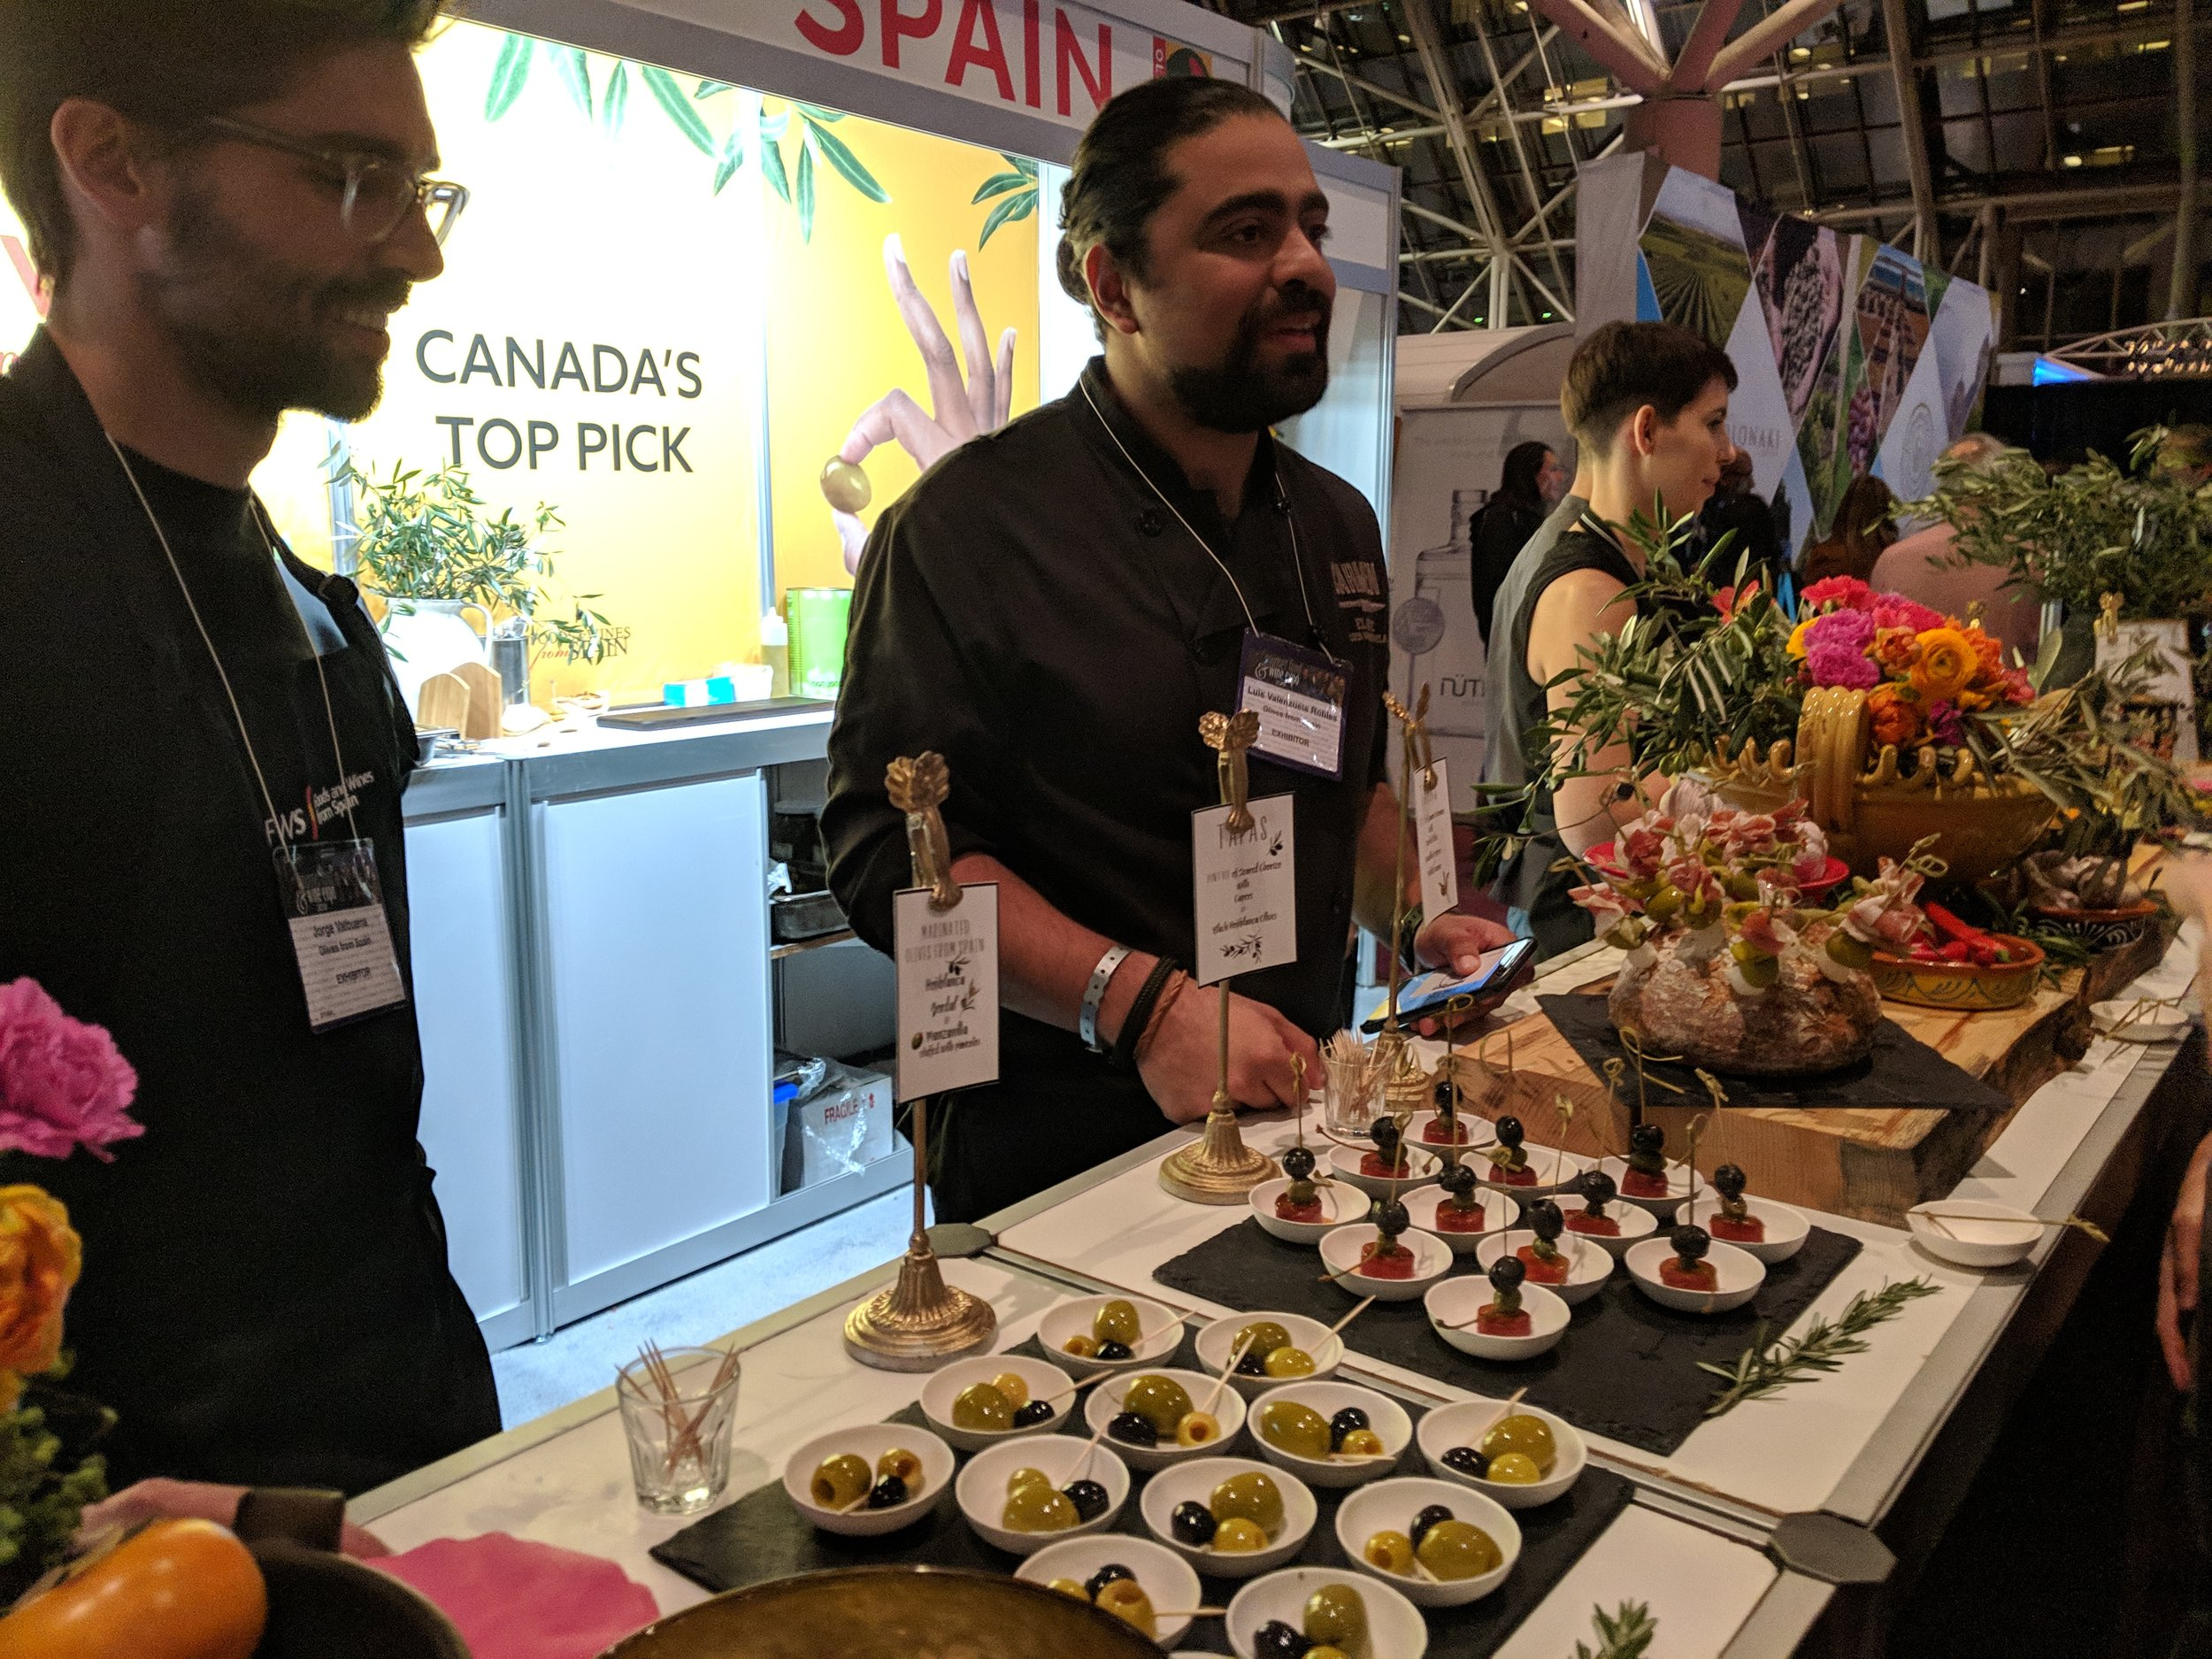 olives from spain gfwe chef luis valanzuela